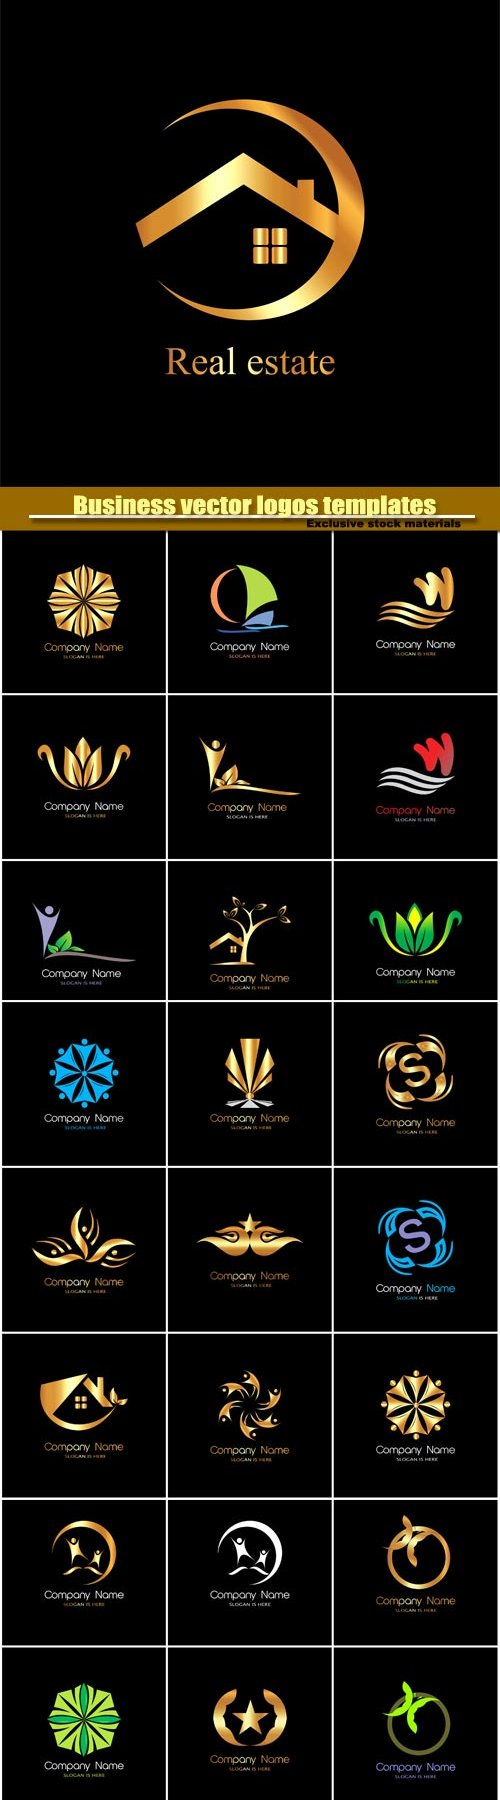 Business vector logos templates, creative gold figure icon #3